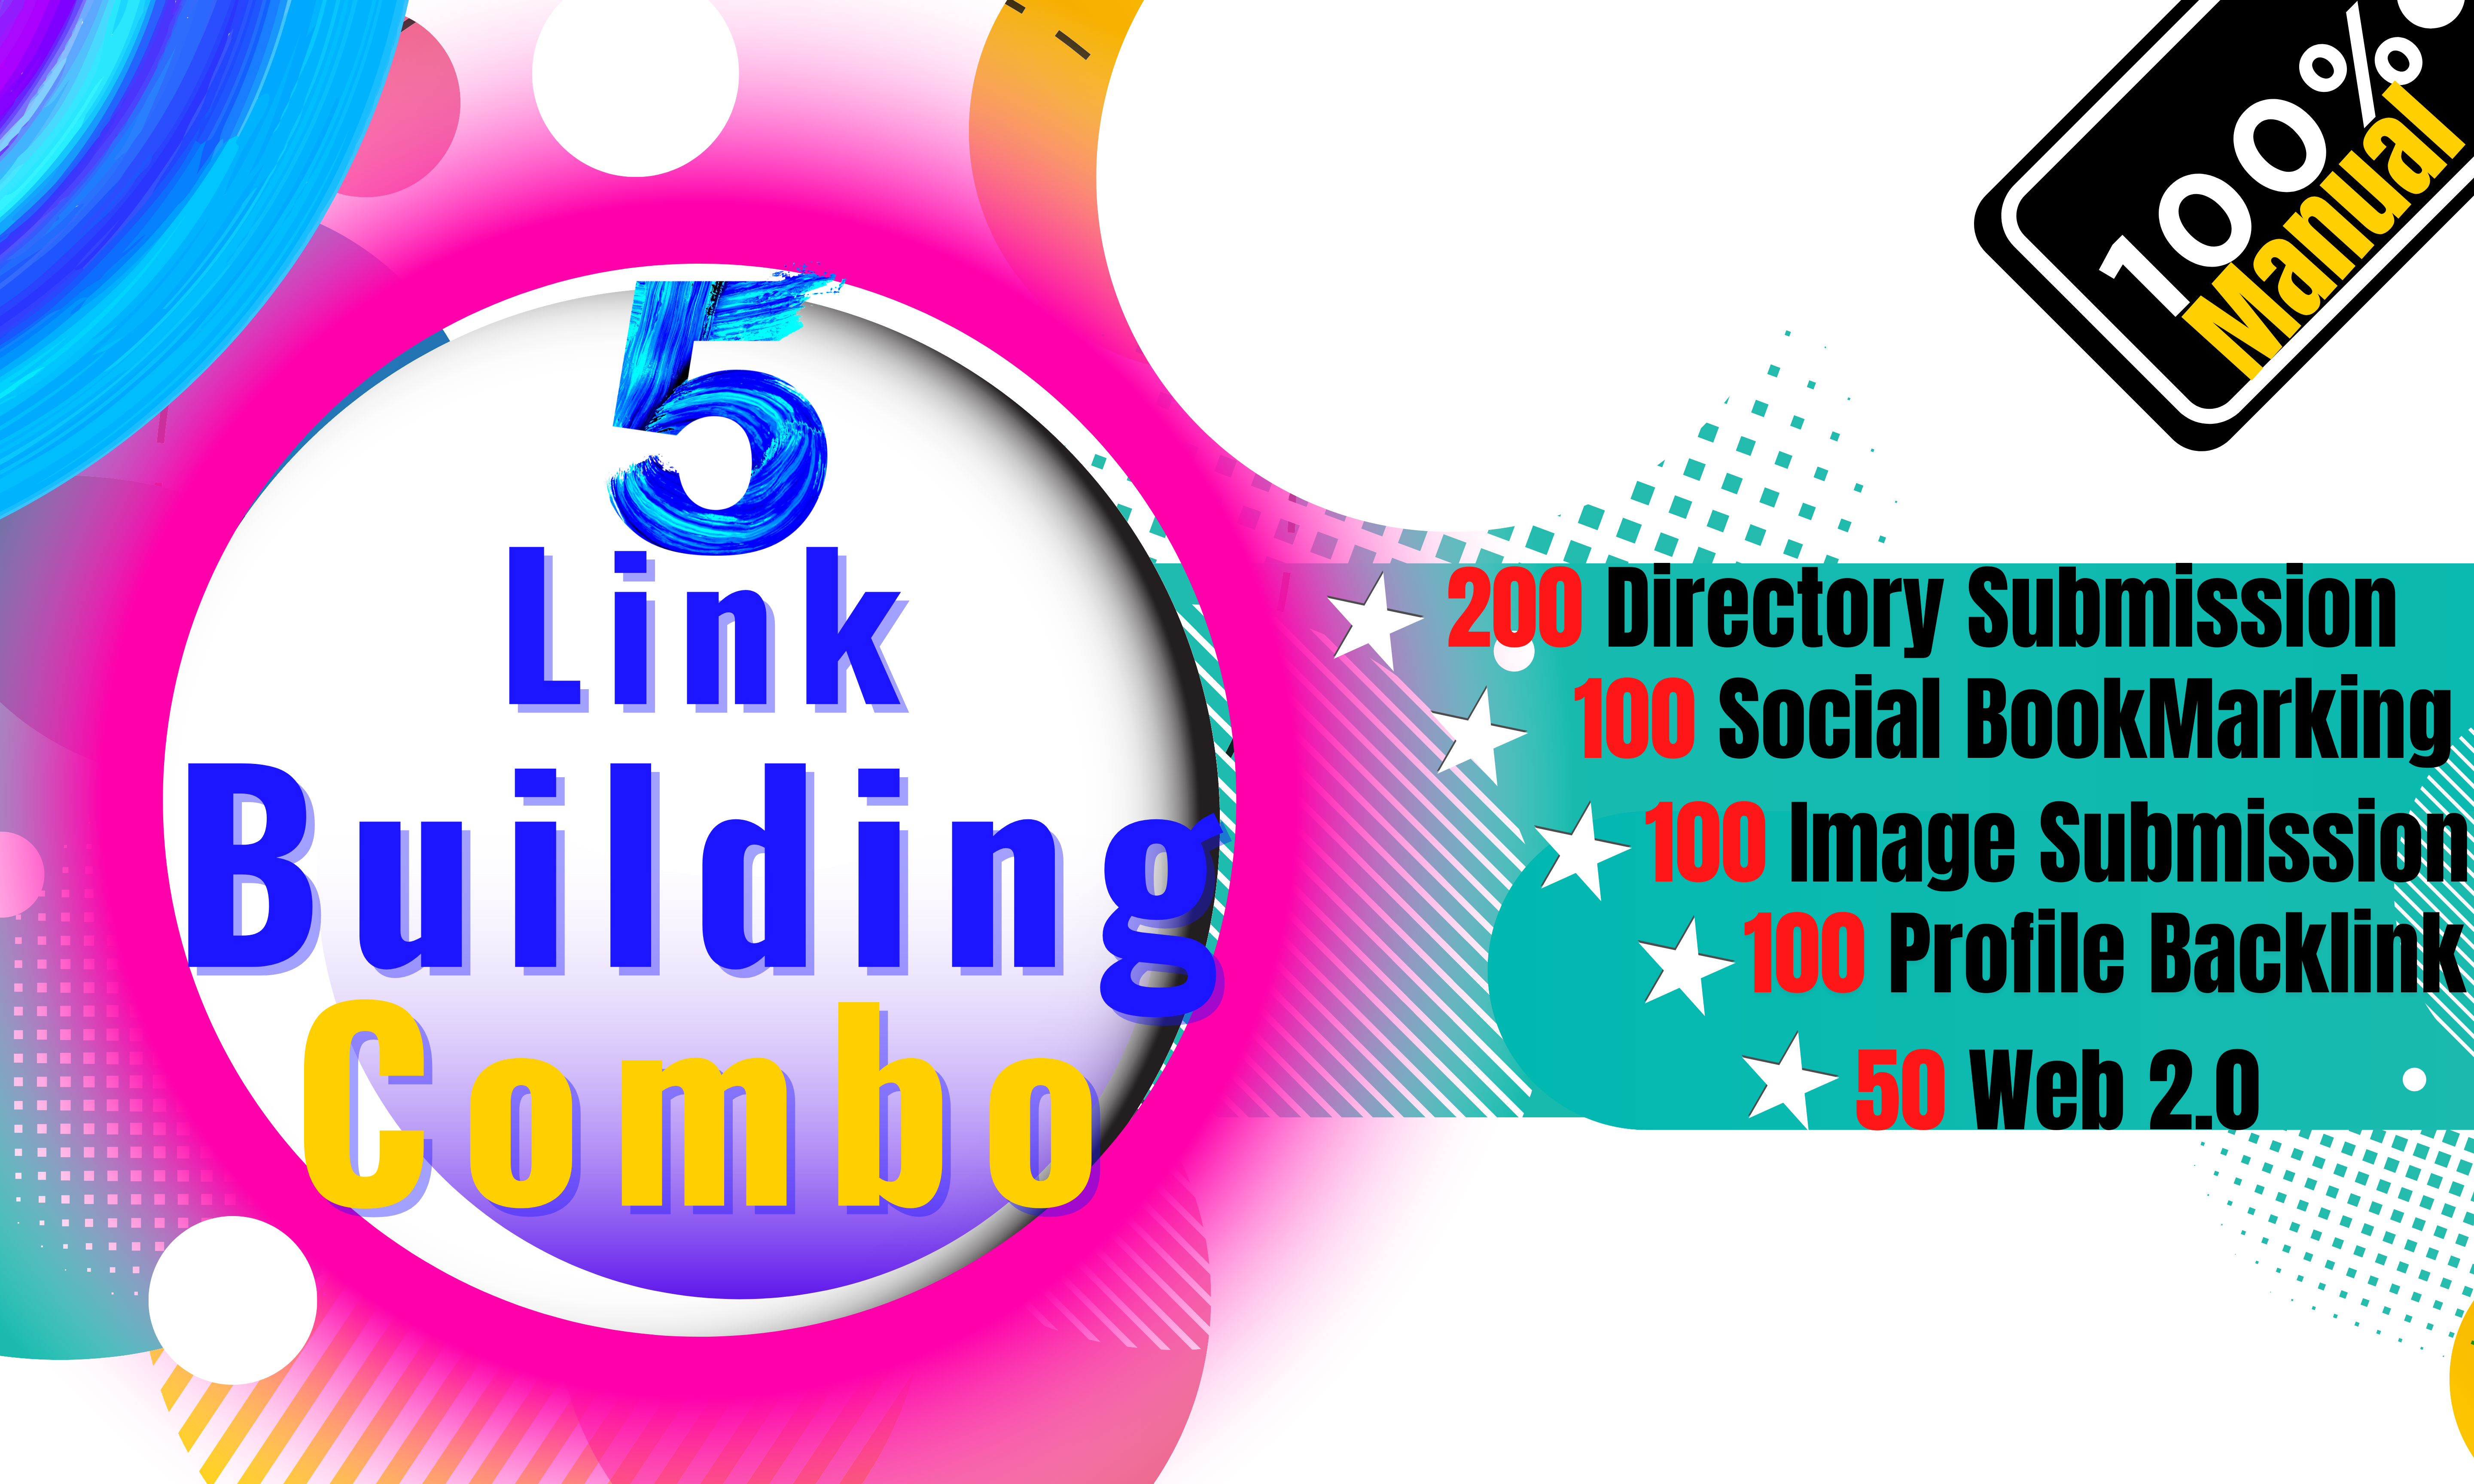 I Will Do Manual 200Directory,  100 Image Submission,  Social-Bookmarking,  Profile BackLink & 50Web2.0